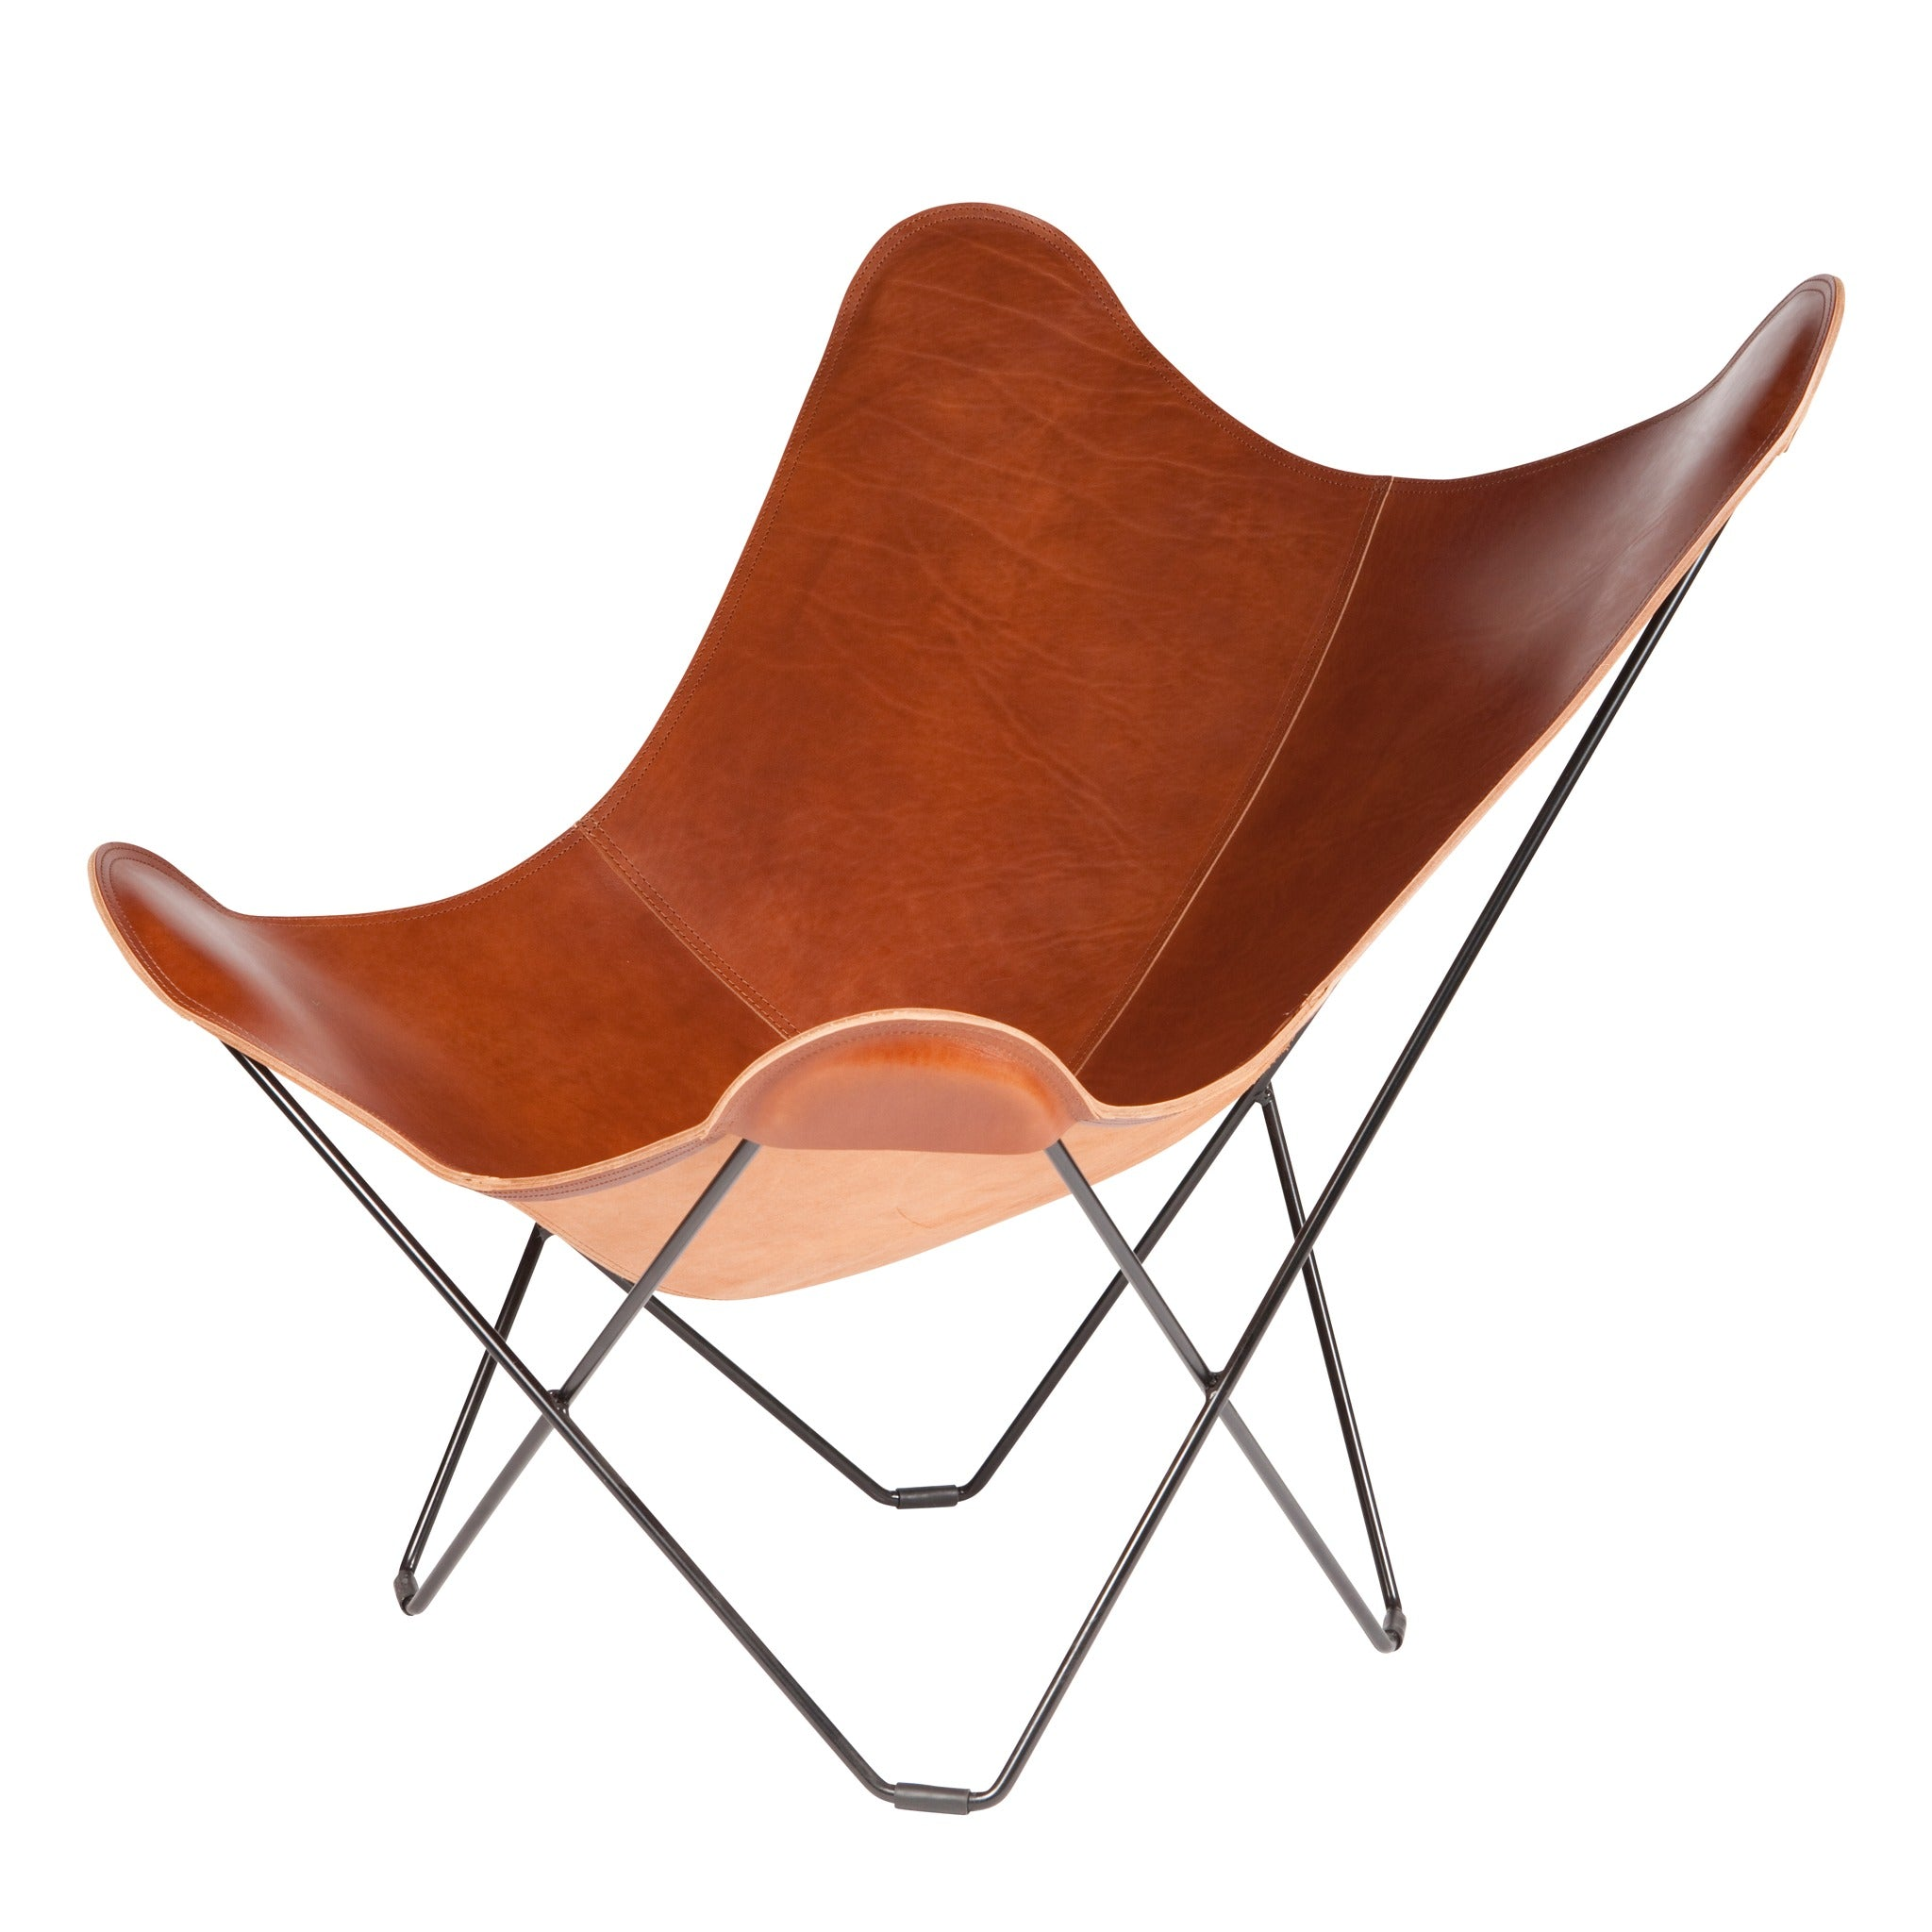 Mariposa Butterfly Leather Chair by Cuero - haus®